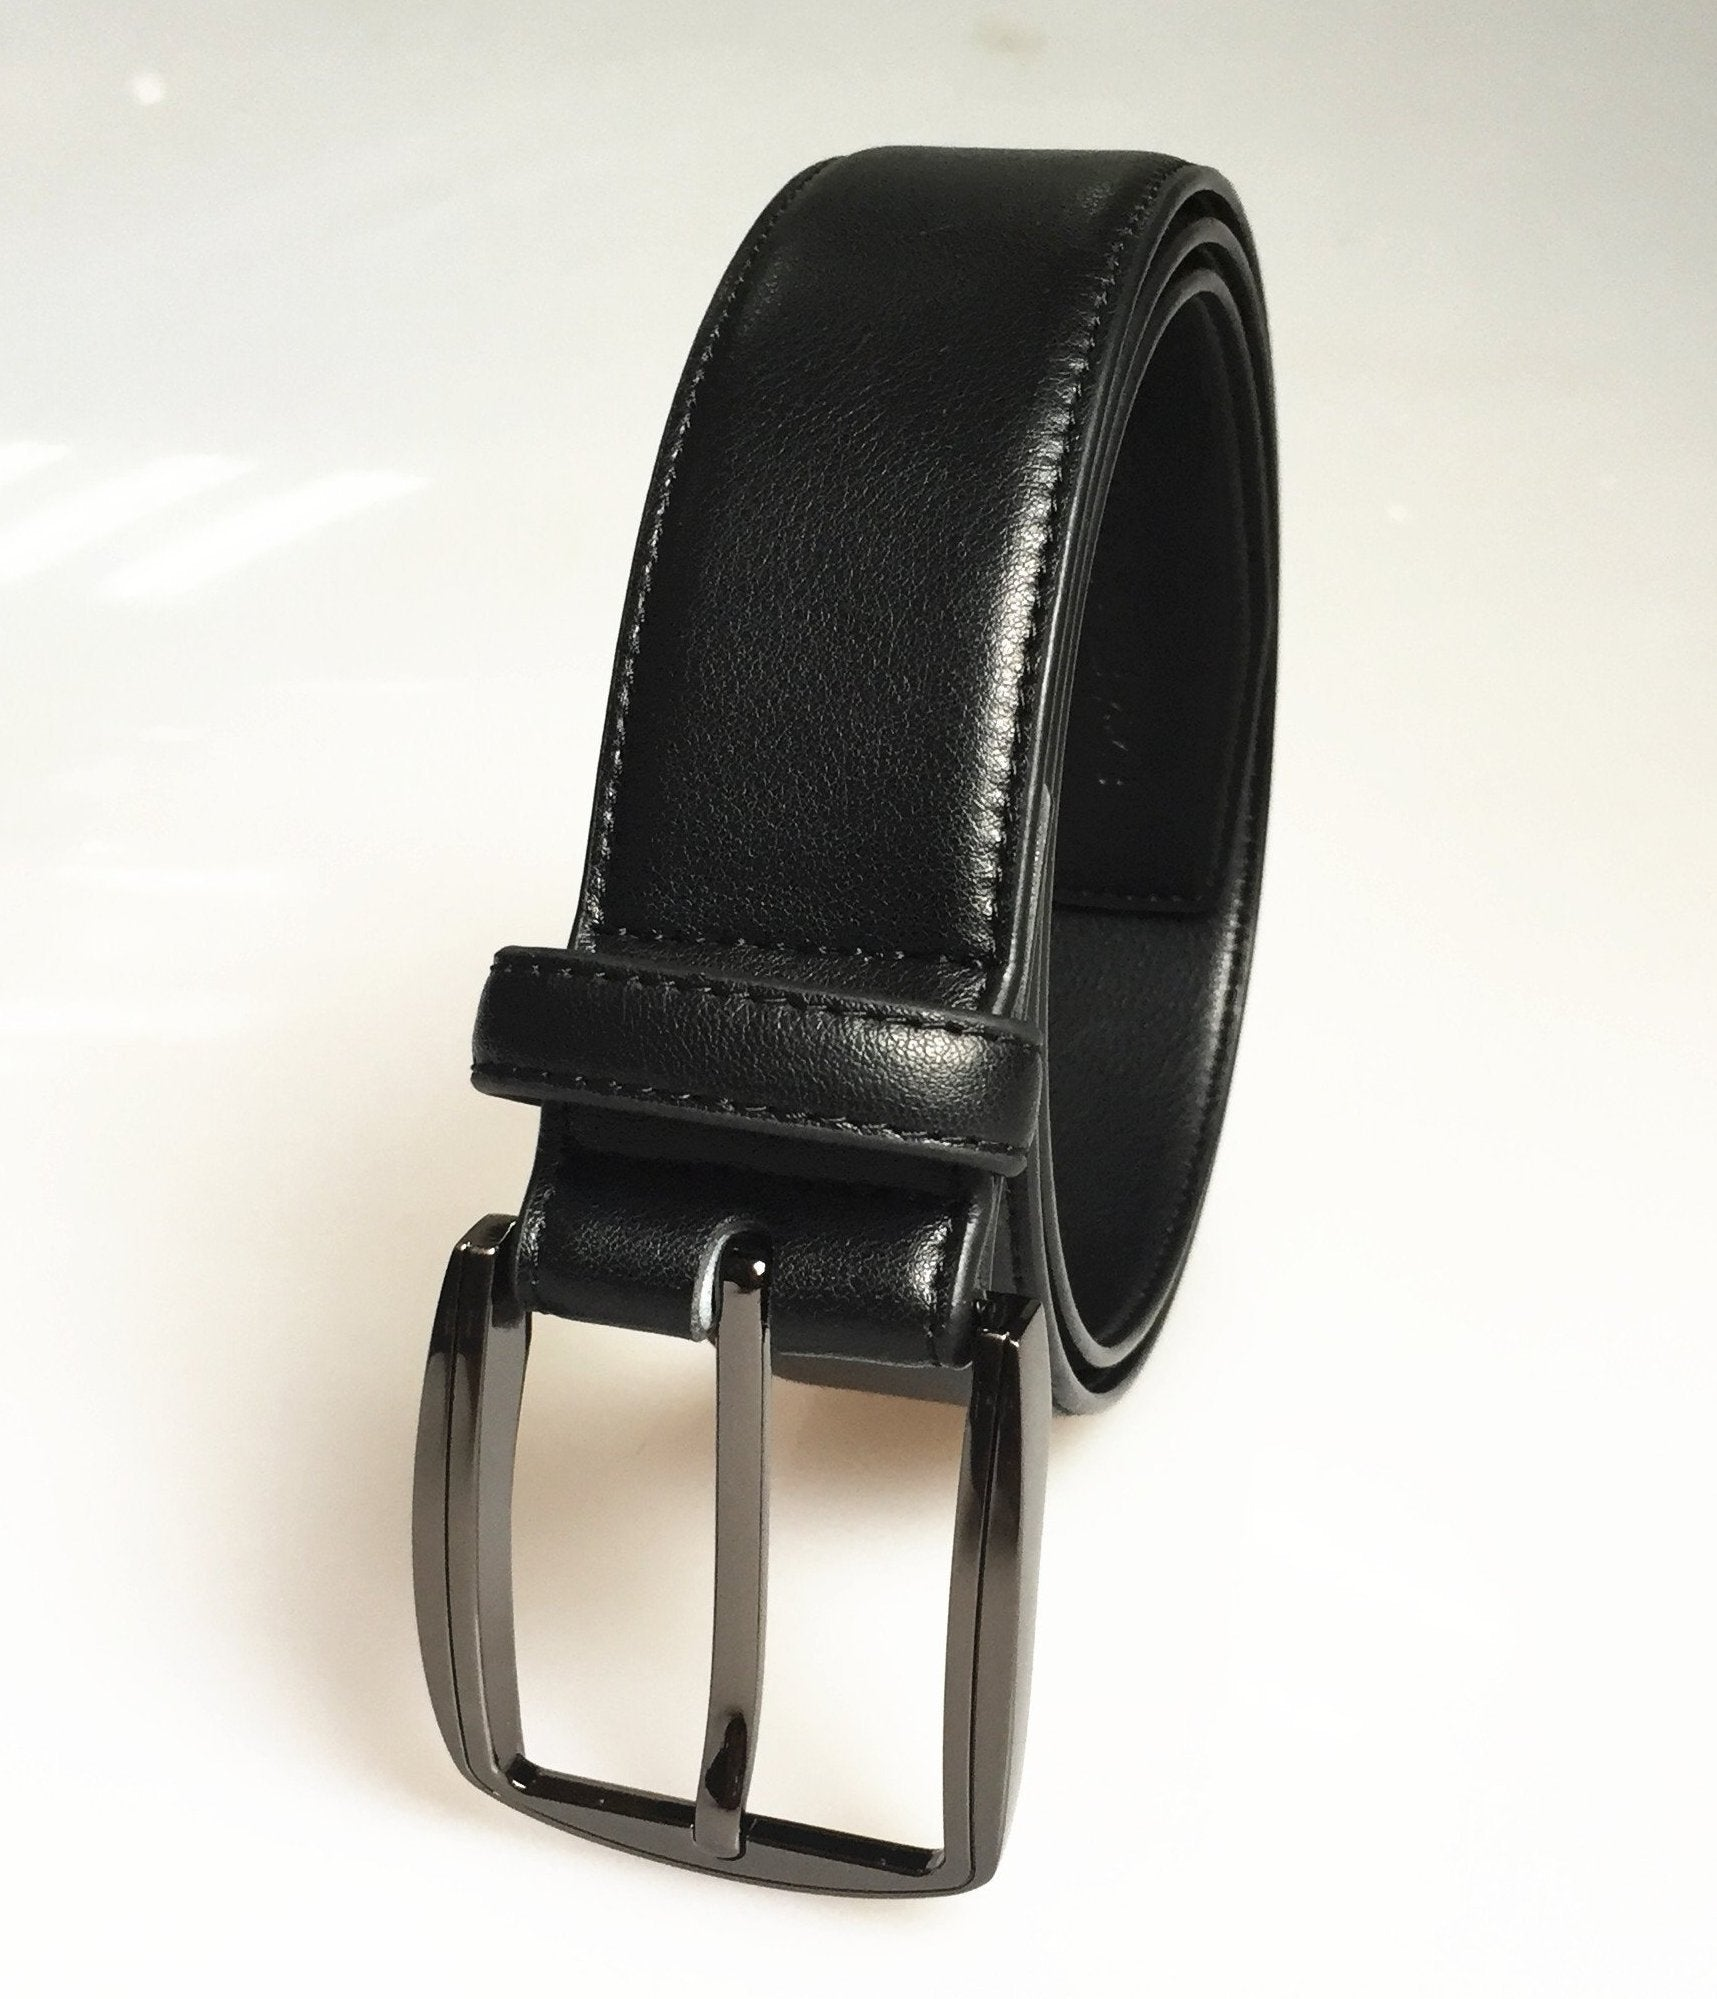 Polished Gunmetal Belt - Benn~Burry